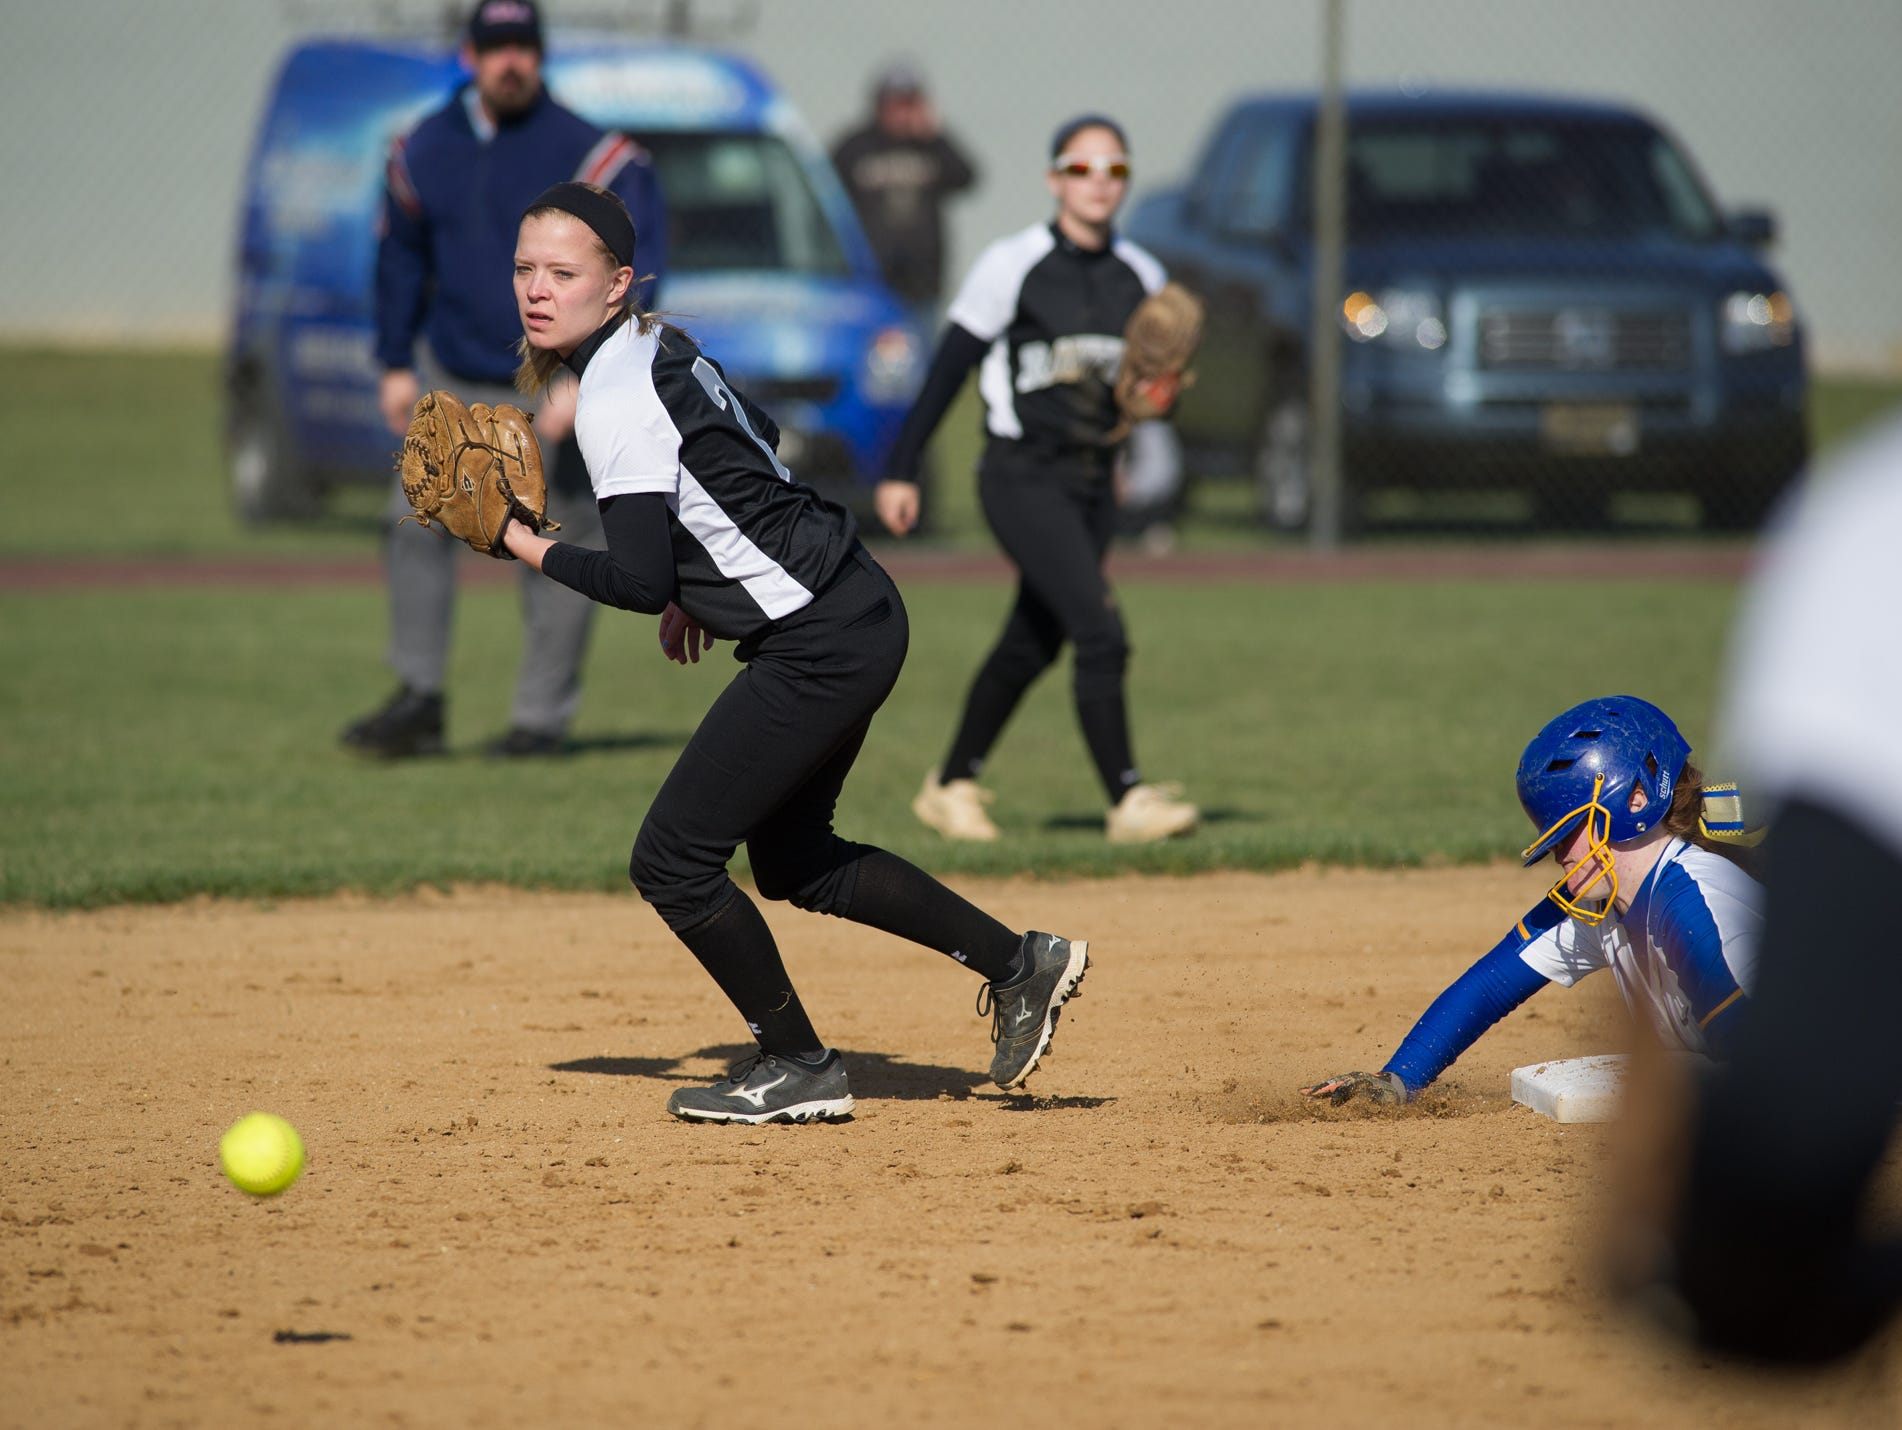 Sussex Tech's Nicole Hovatter (2) misses a catch letting Sussex Central's Mariah Rogers (22) slide safety into second base.